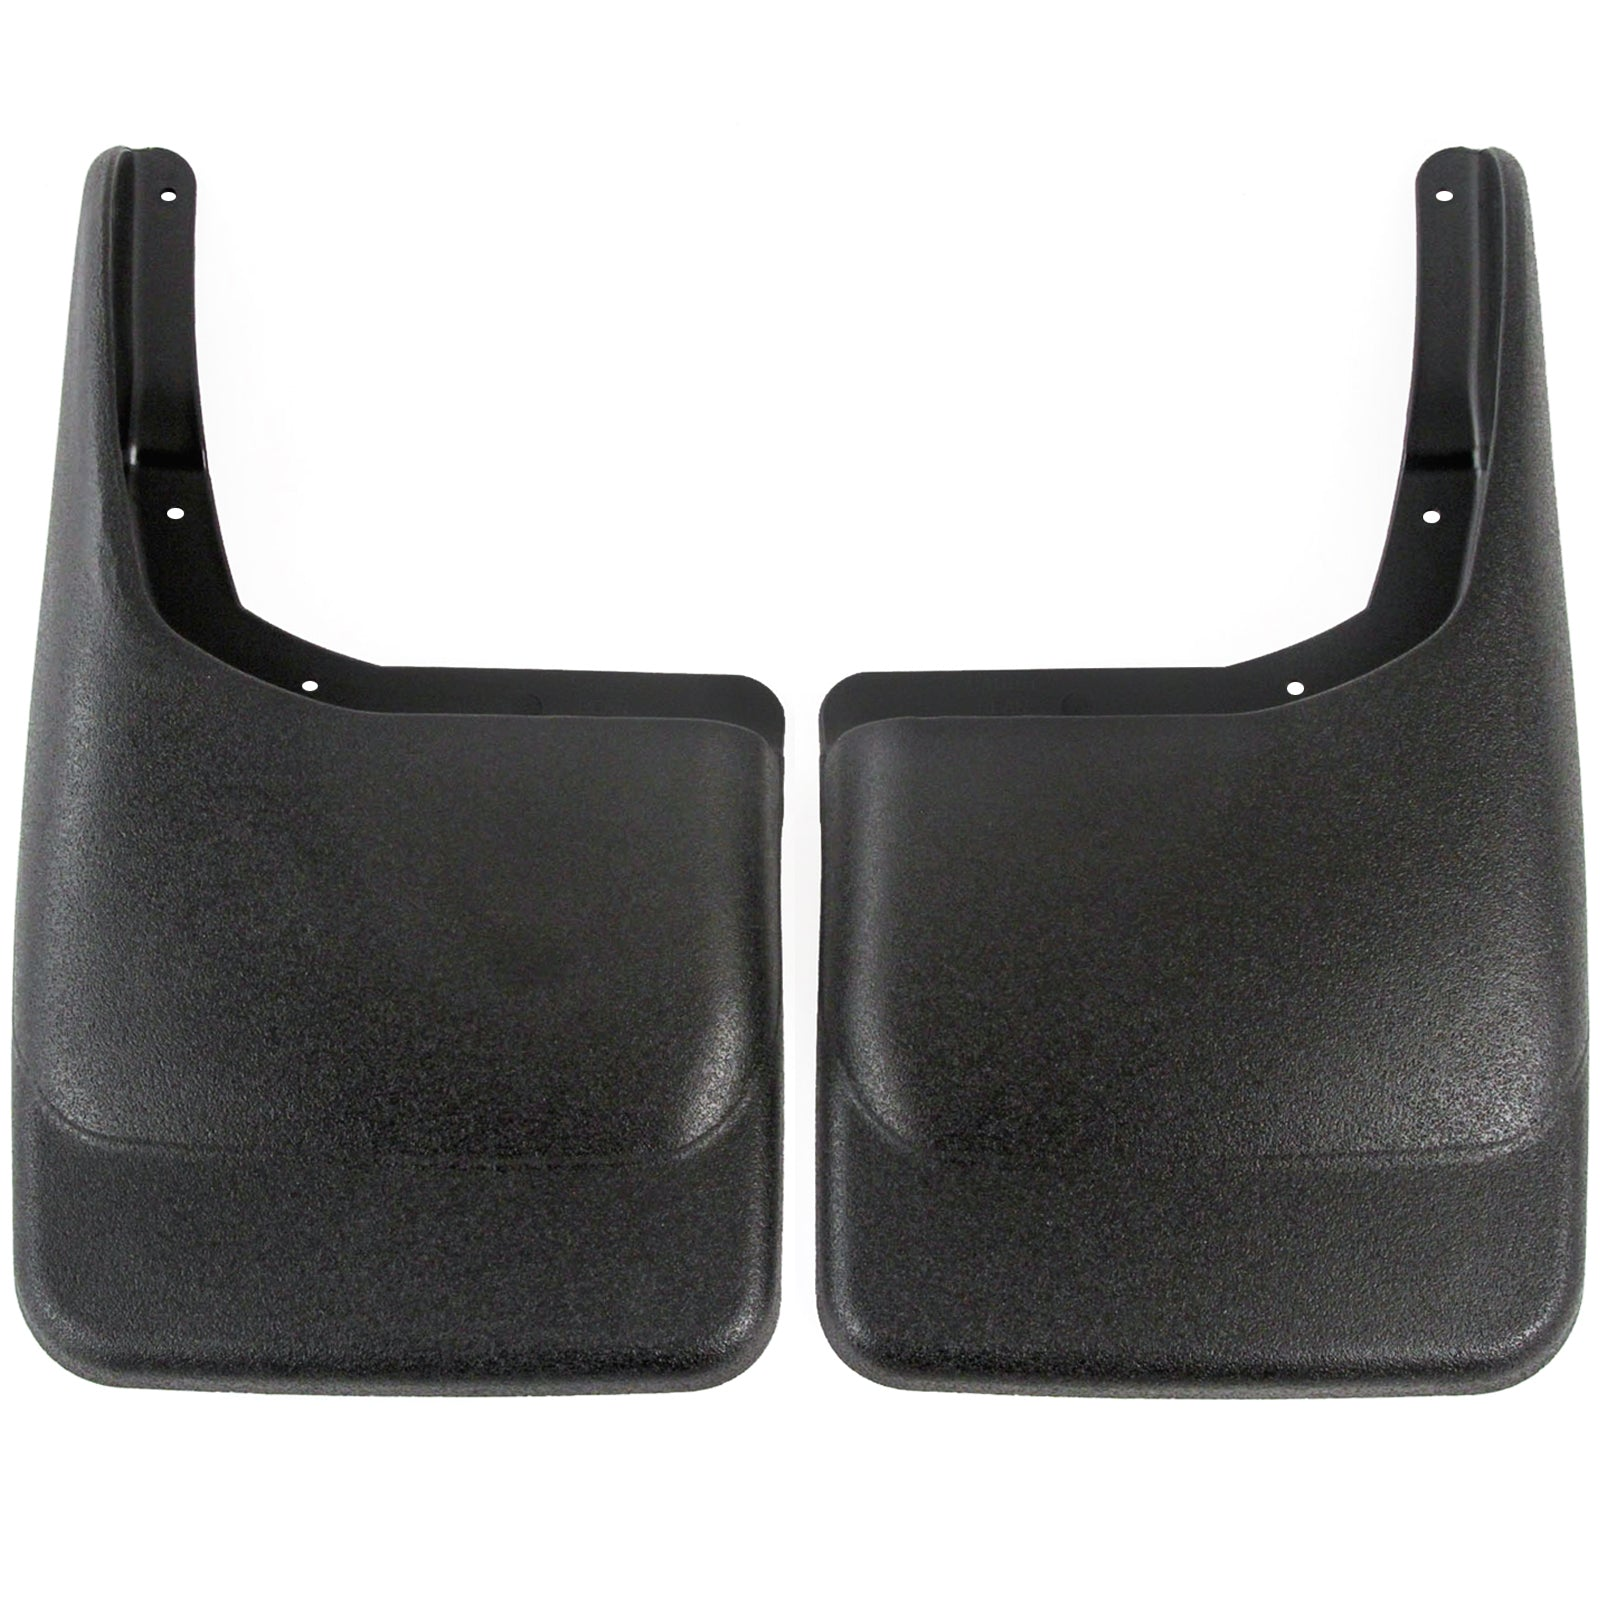 2004-2014 Compatible with Ford F150 Mud Flaps Guards Splash Rear Molded 2pc Set (Without Fender Flares)